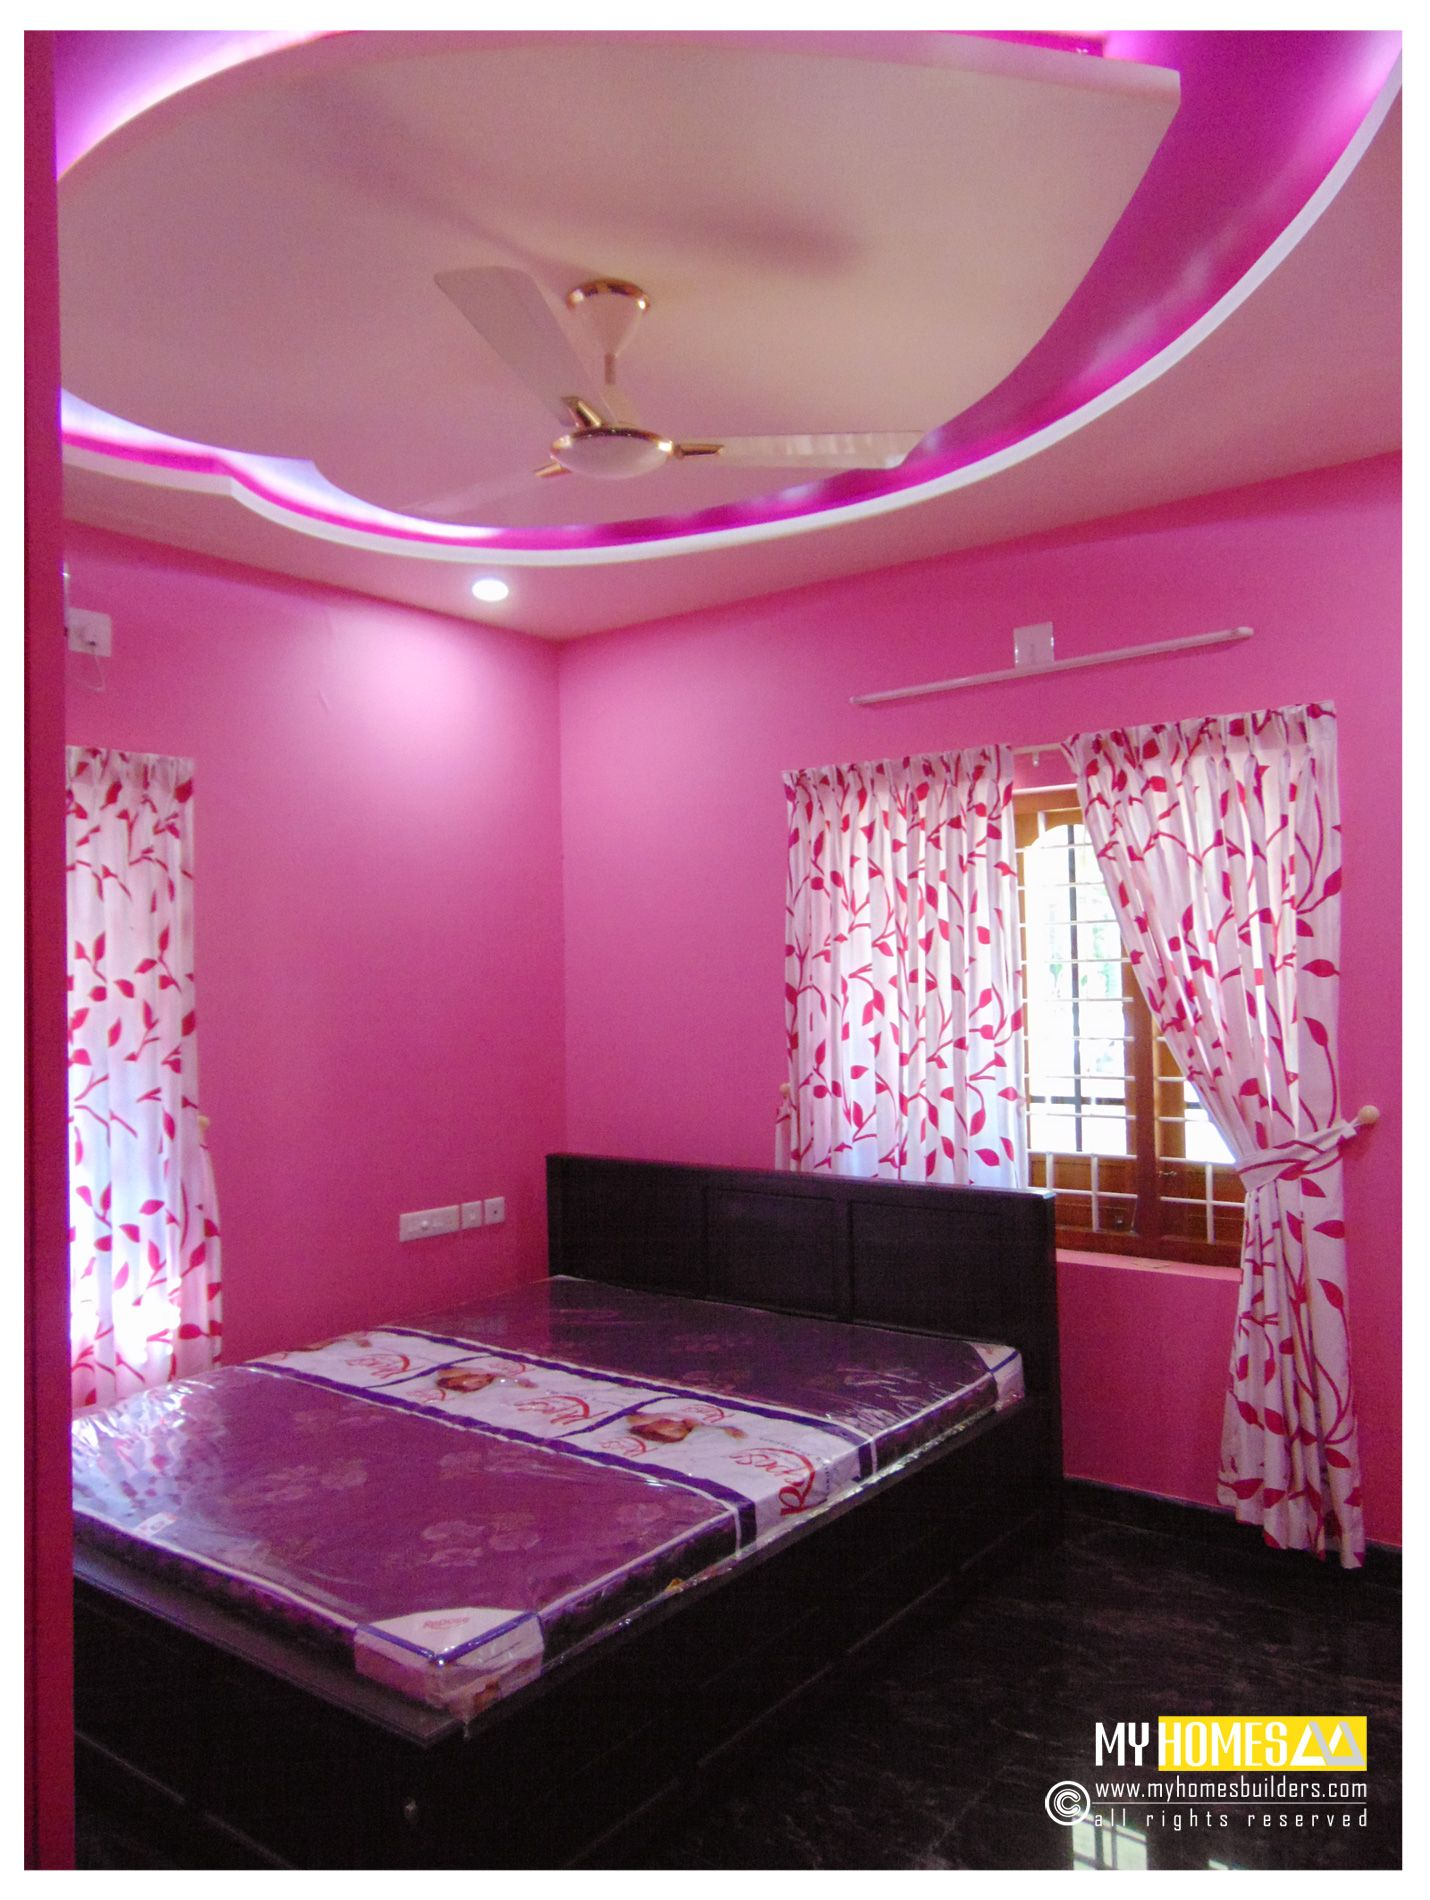 Kerala bedroom interior designs best bed room interior for Kerala model interior designs